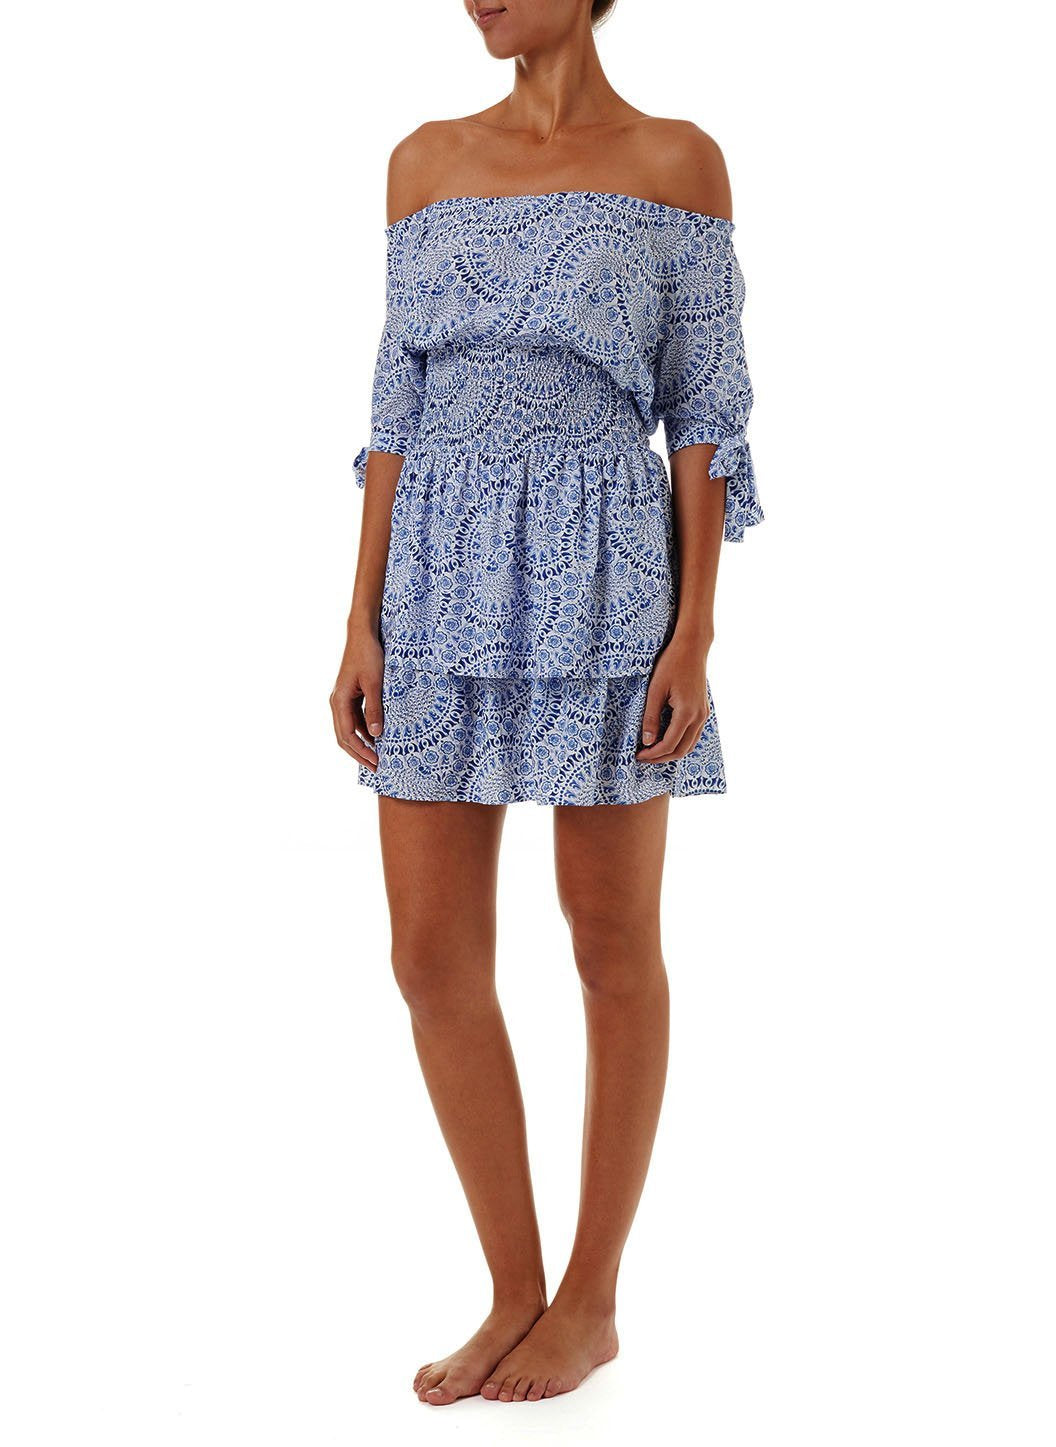 camilla blue fan offtheshoulder short dress 2019 F